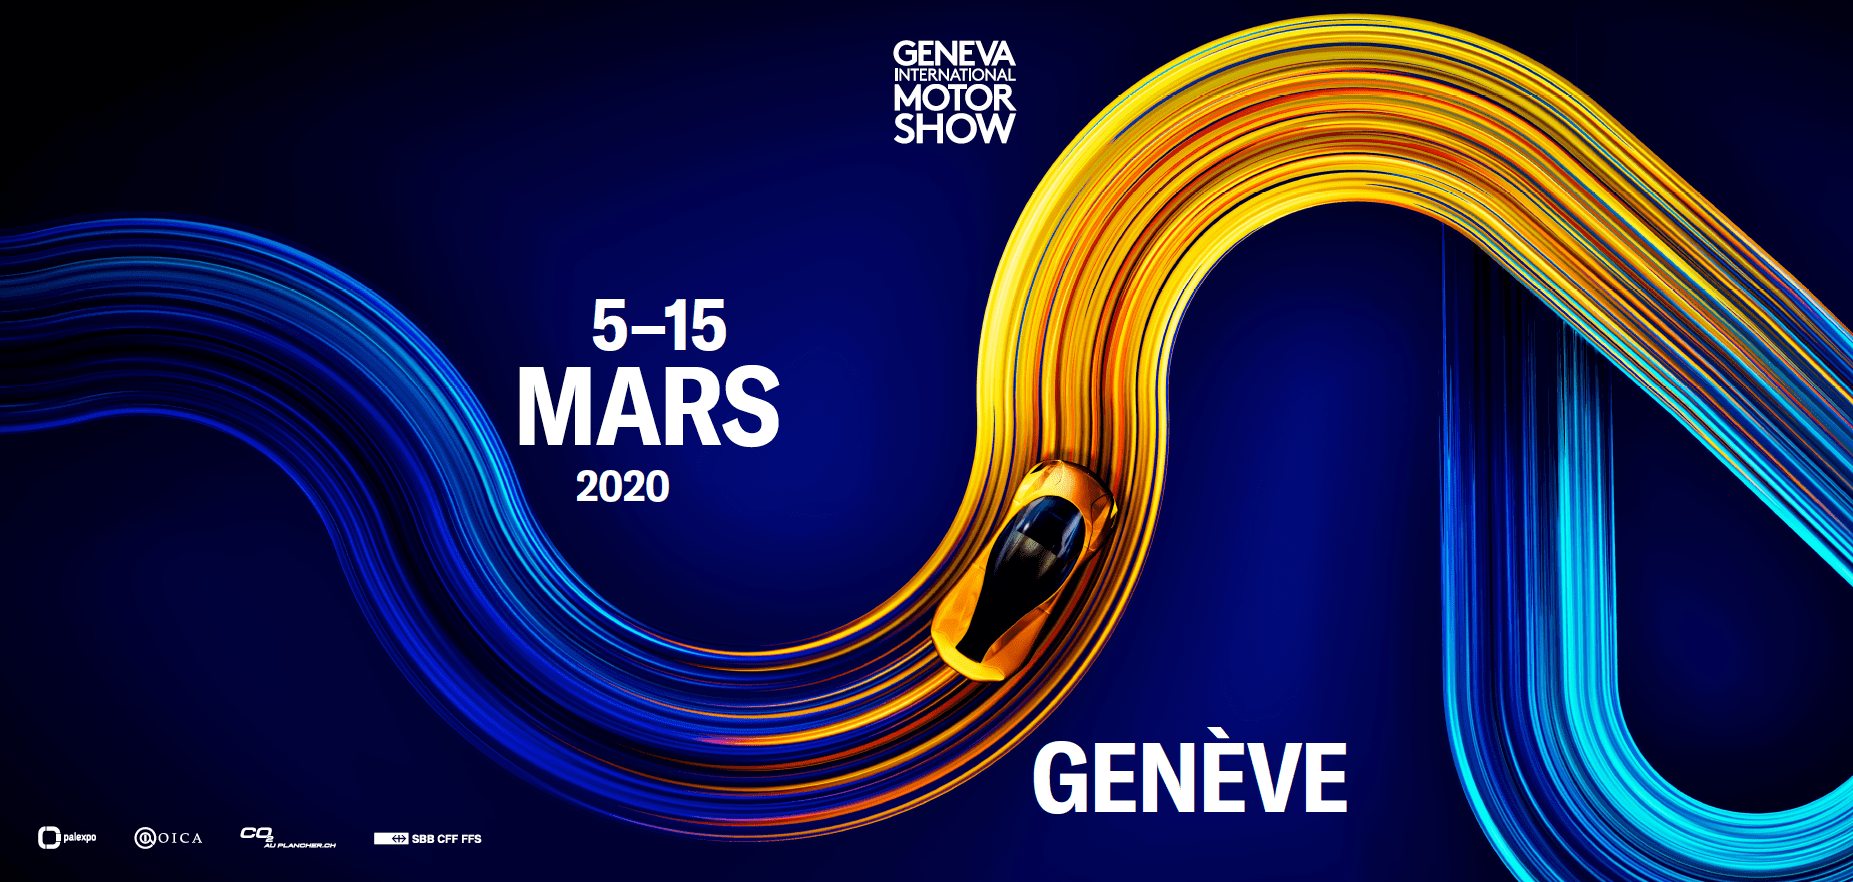 Salon international de l'Automobile de Genève 2020